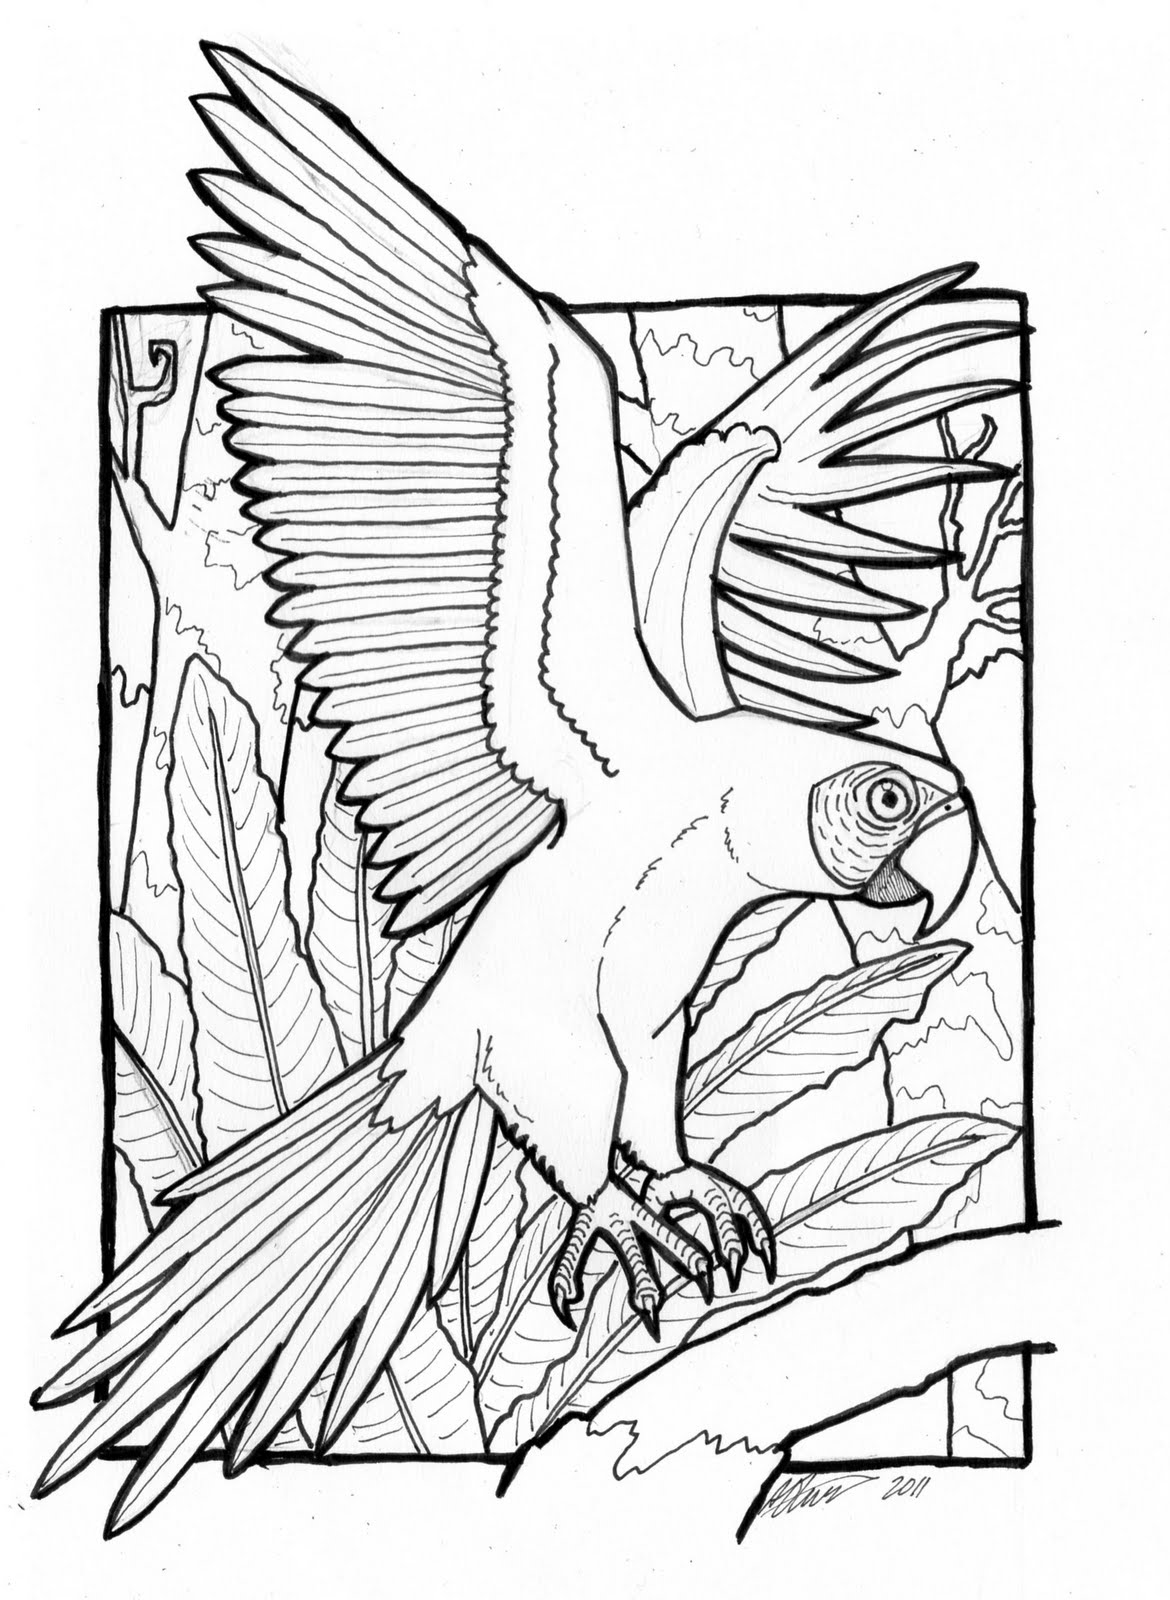 macaw coloring pages two macau parrot coloring page download print online macaw pages coloring